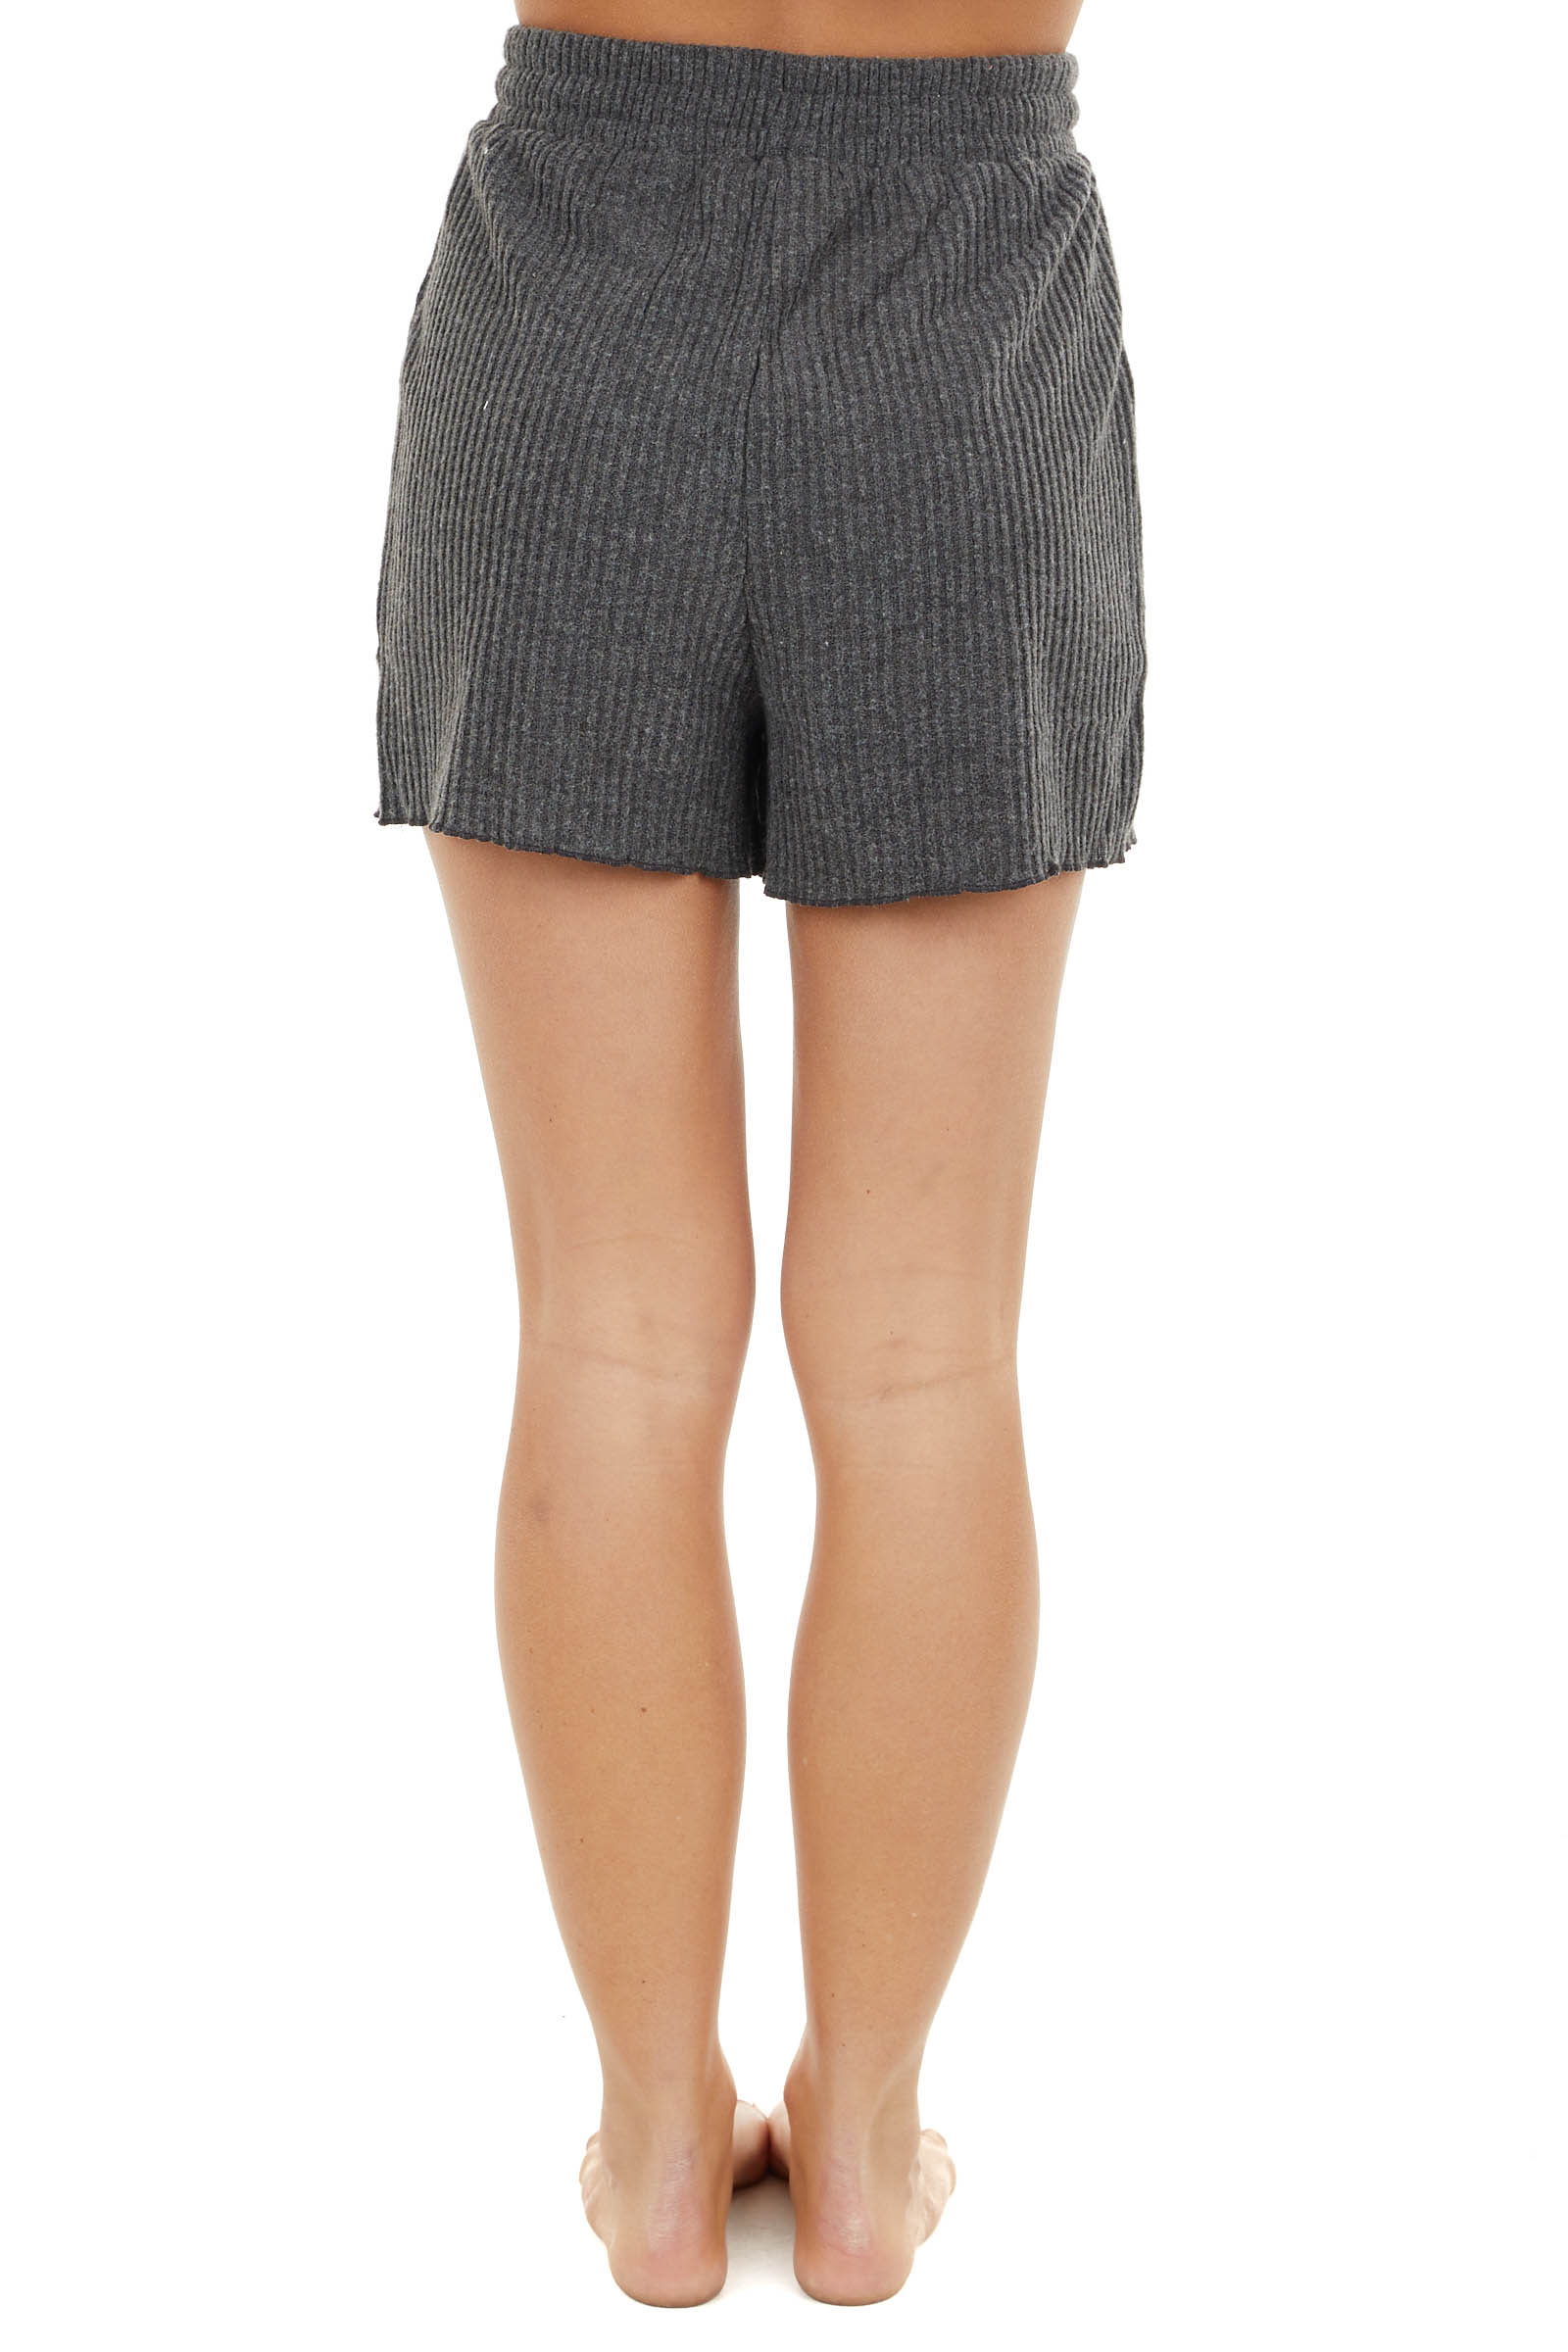 Charcoal Grey Rib Knit Shorts with Elastic Waist and Pockets